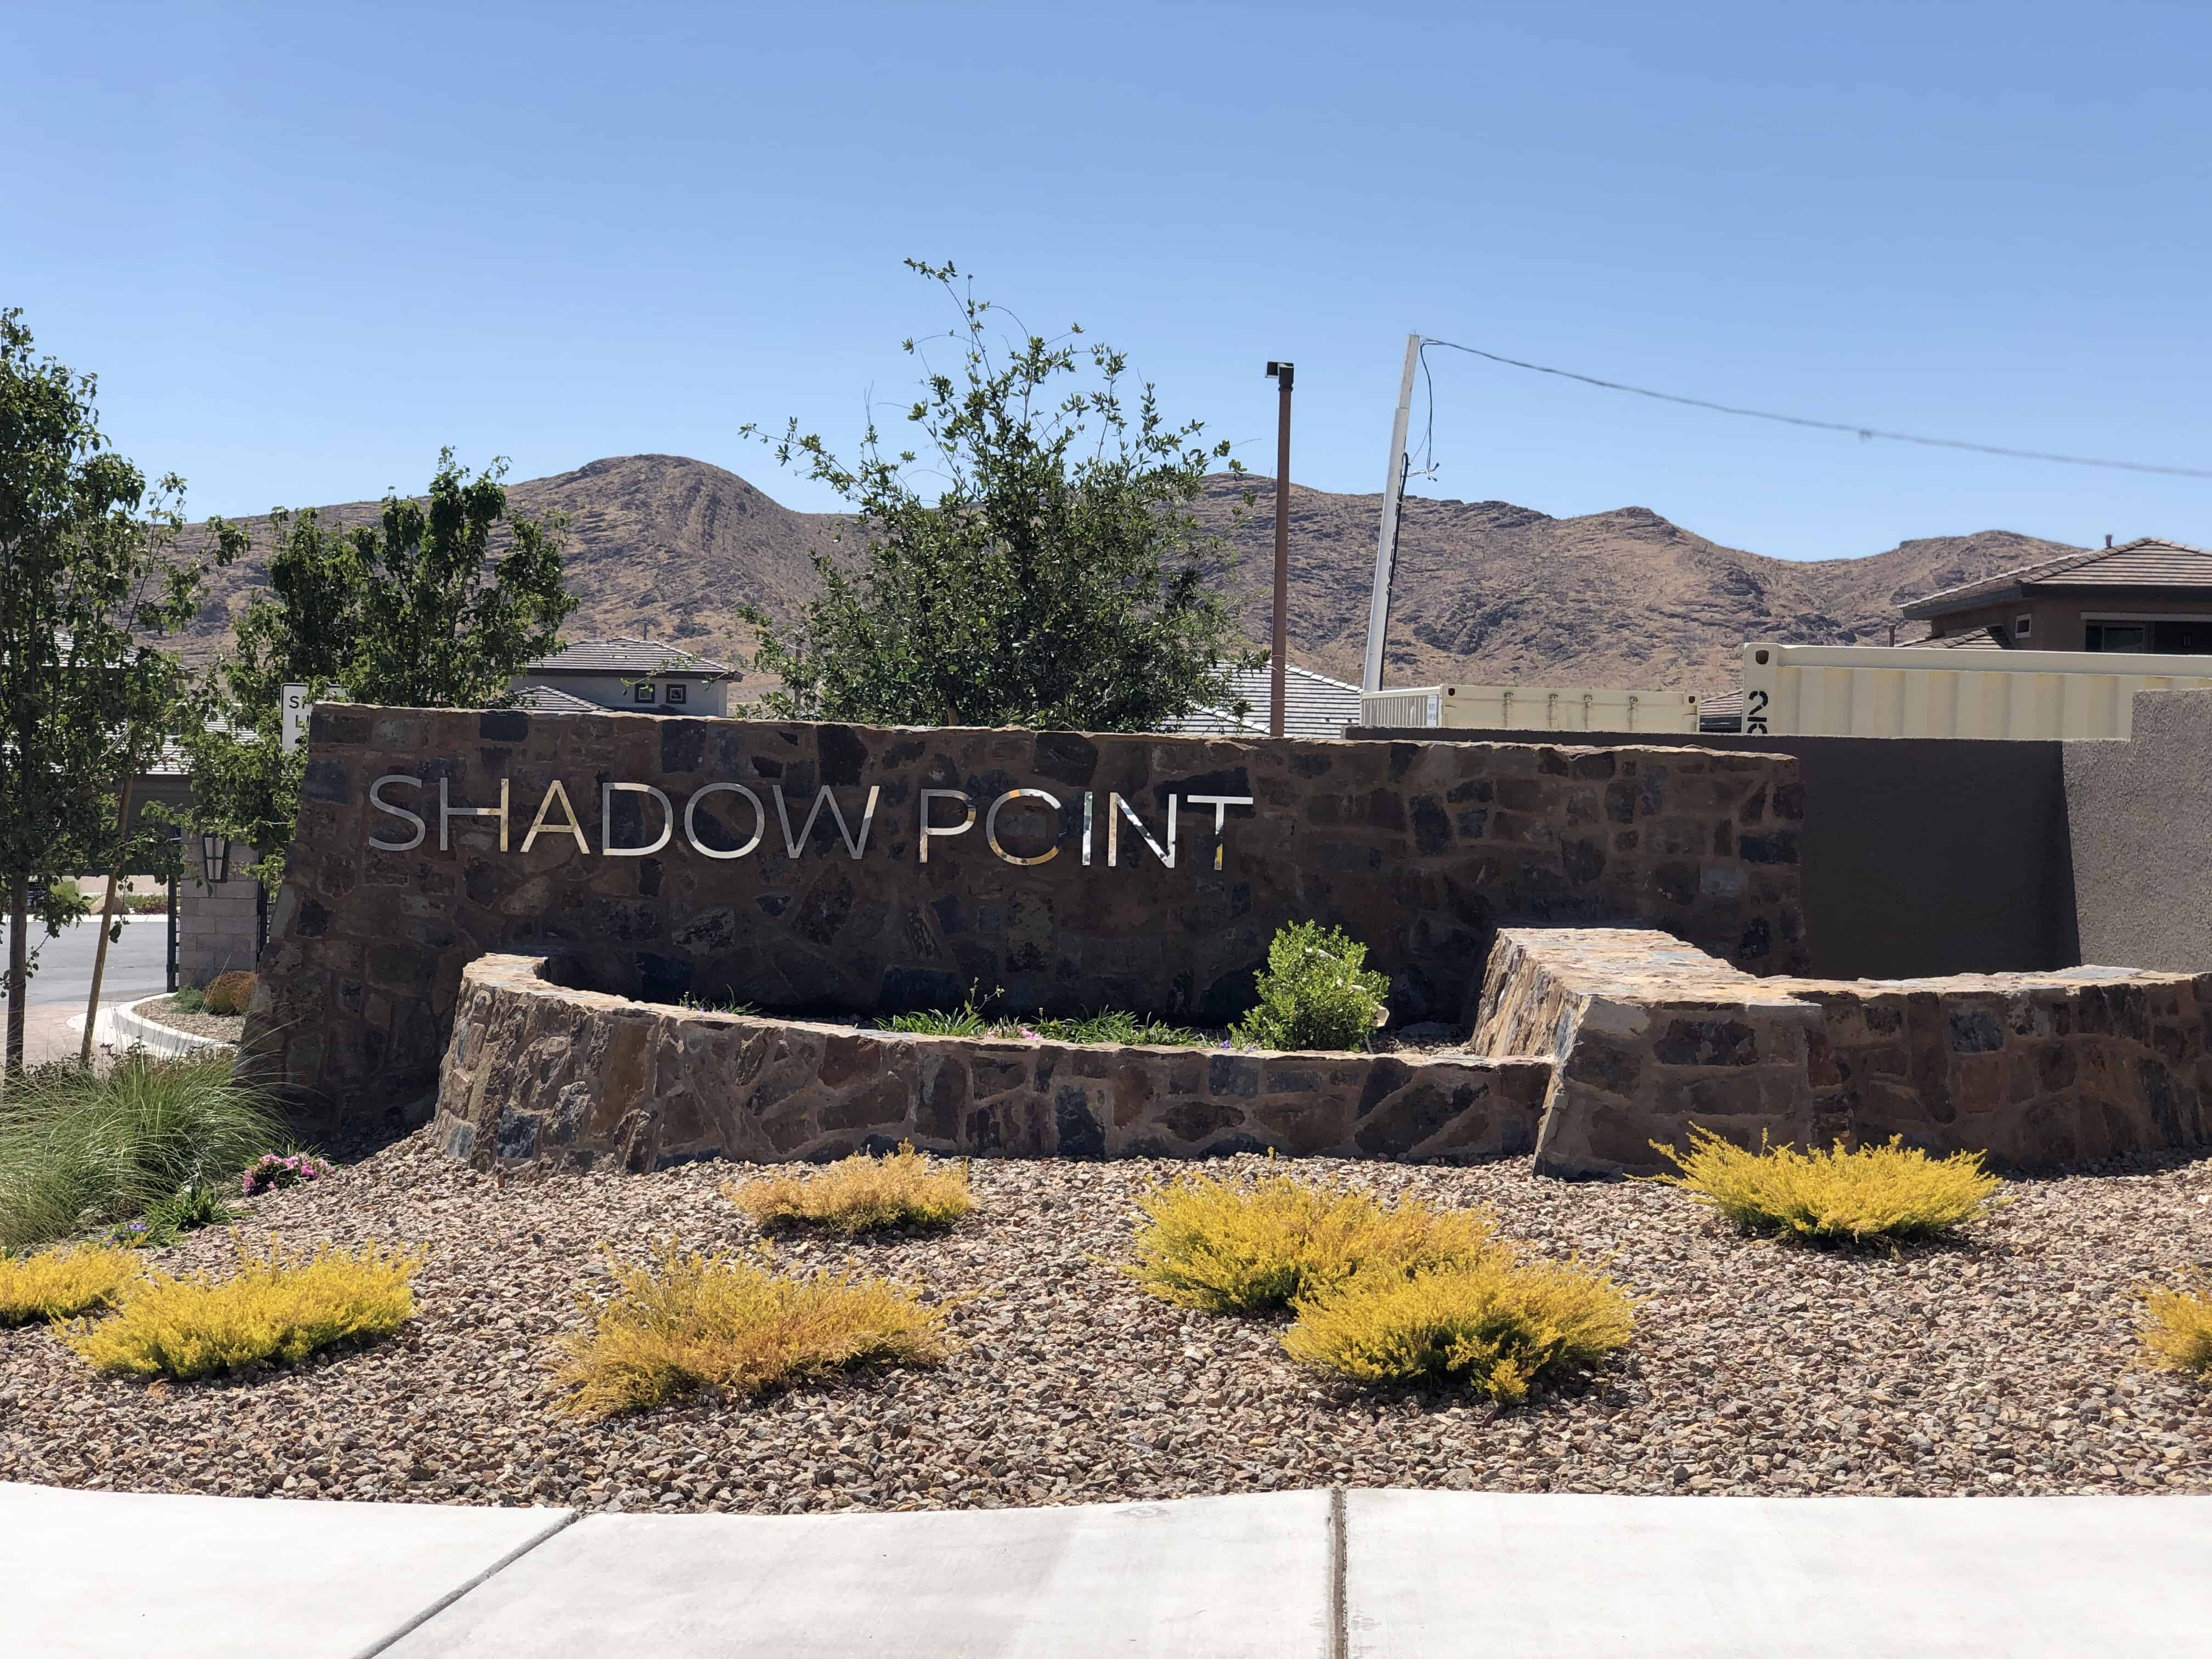 Shadow-Point-Entrance-sign-photo